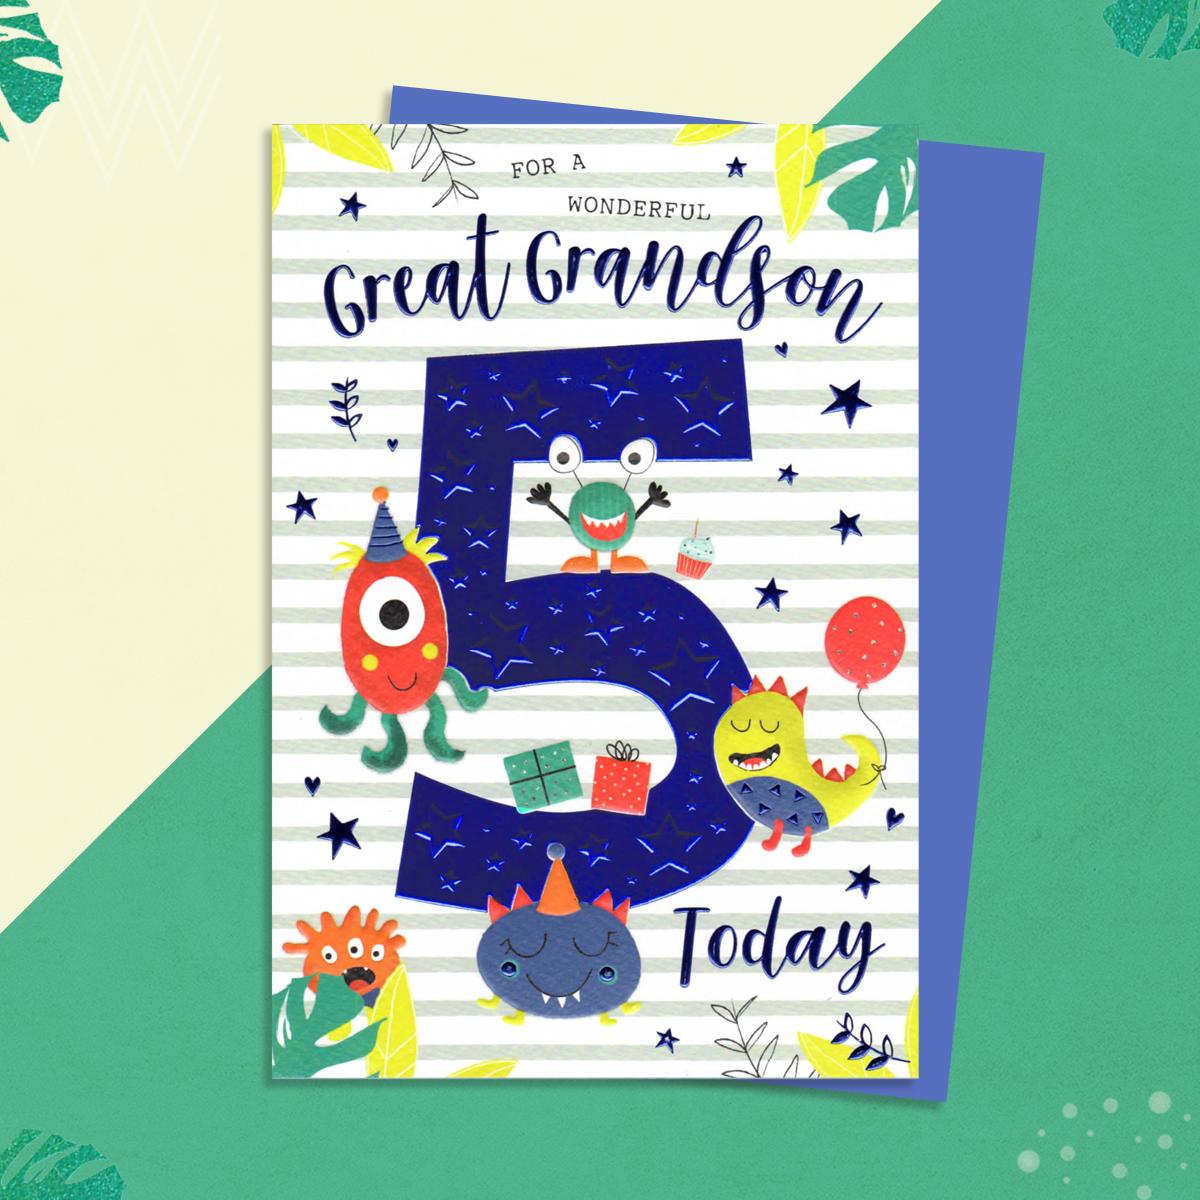 Age 5 Monsters Great Grandson Age 5 Birthday Card Sitting On A Wooden Shelf